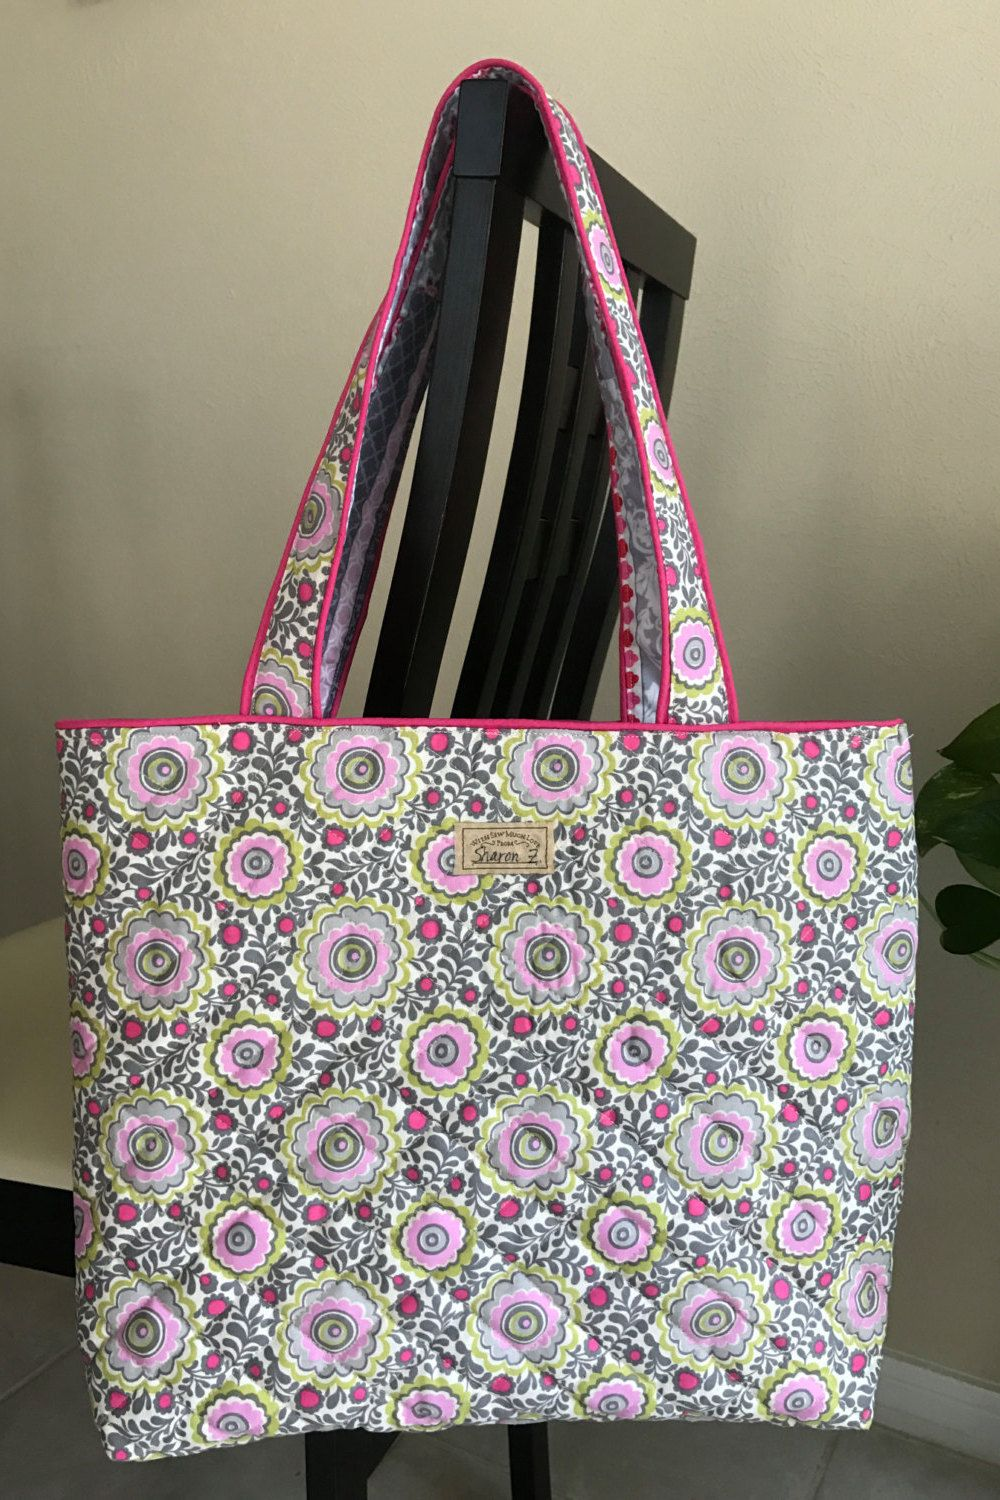 Vera Bradley Style Quilted Tote Bag Carry On Overnight Diaper Classy Gift For Her Teacher Birthday By PawpaintsUS